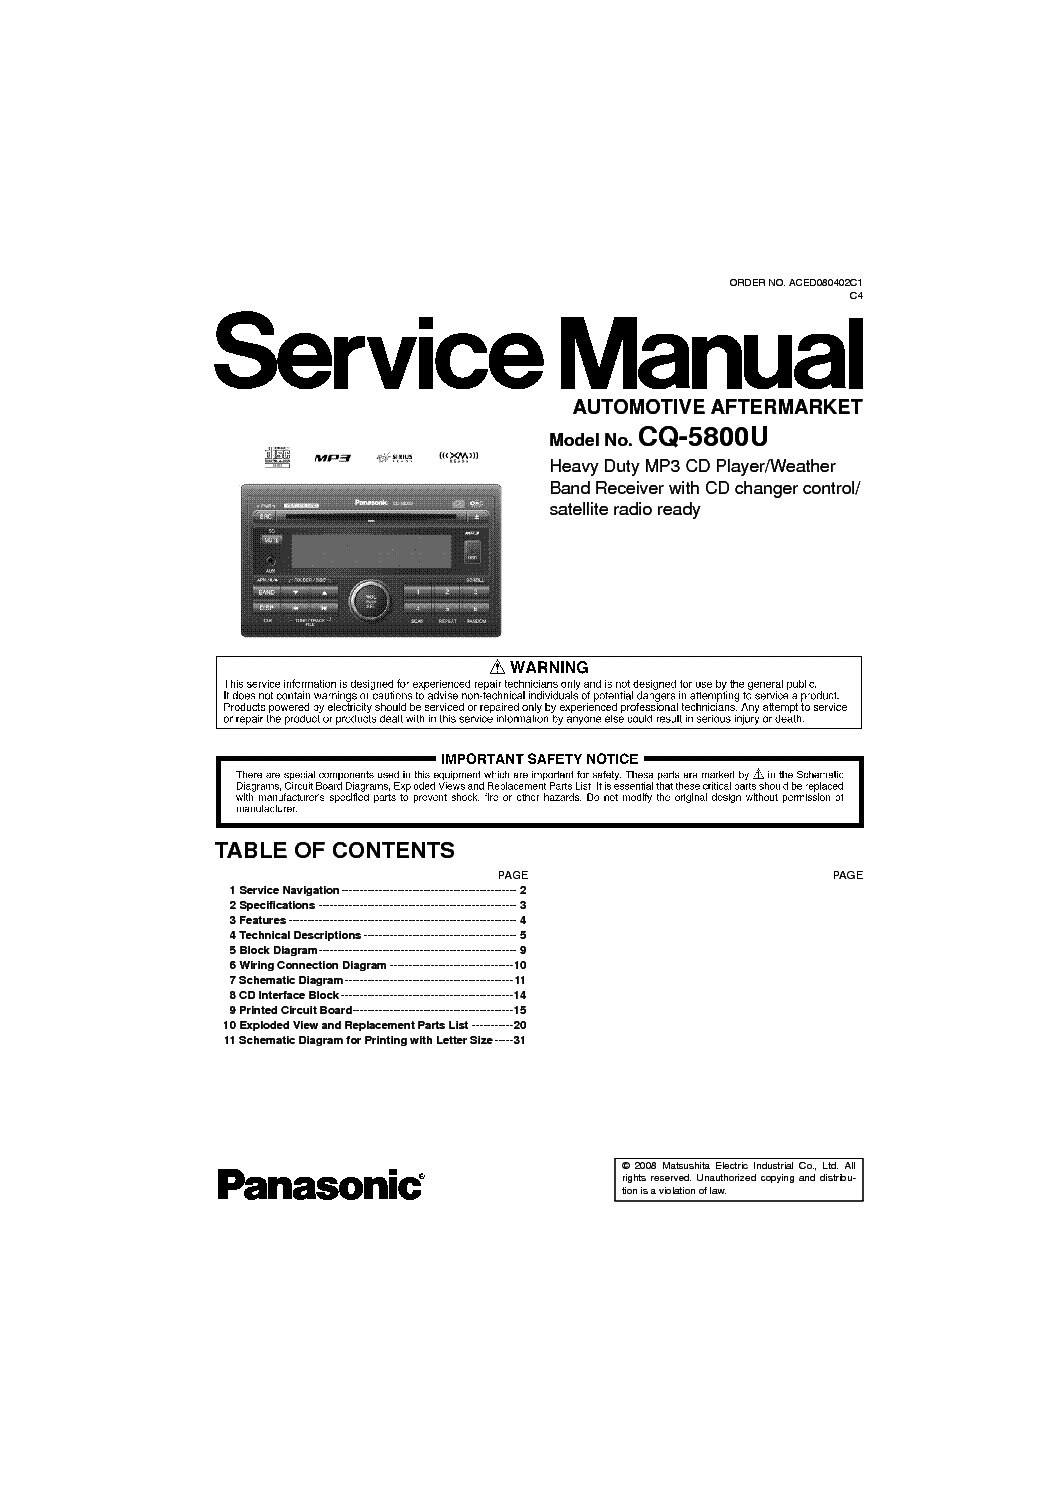 panasonic cd player wiring diagram cd free printable wiring diagrams